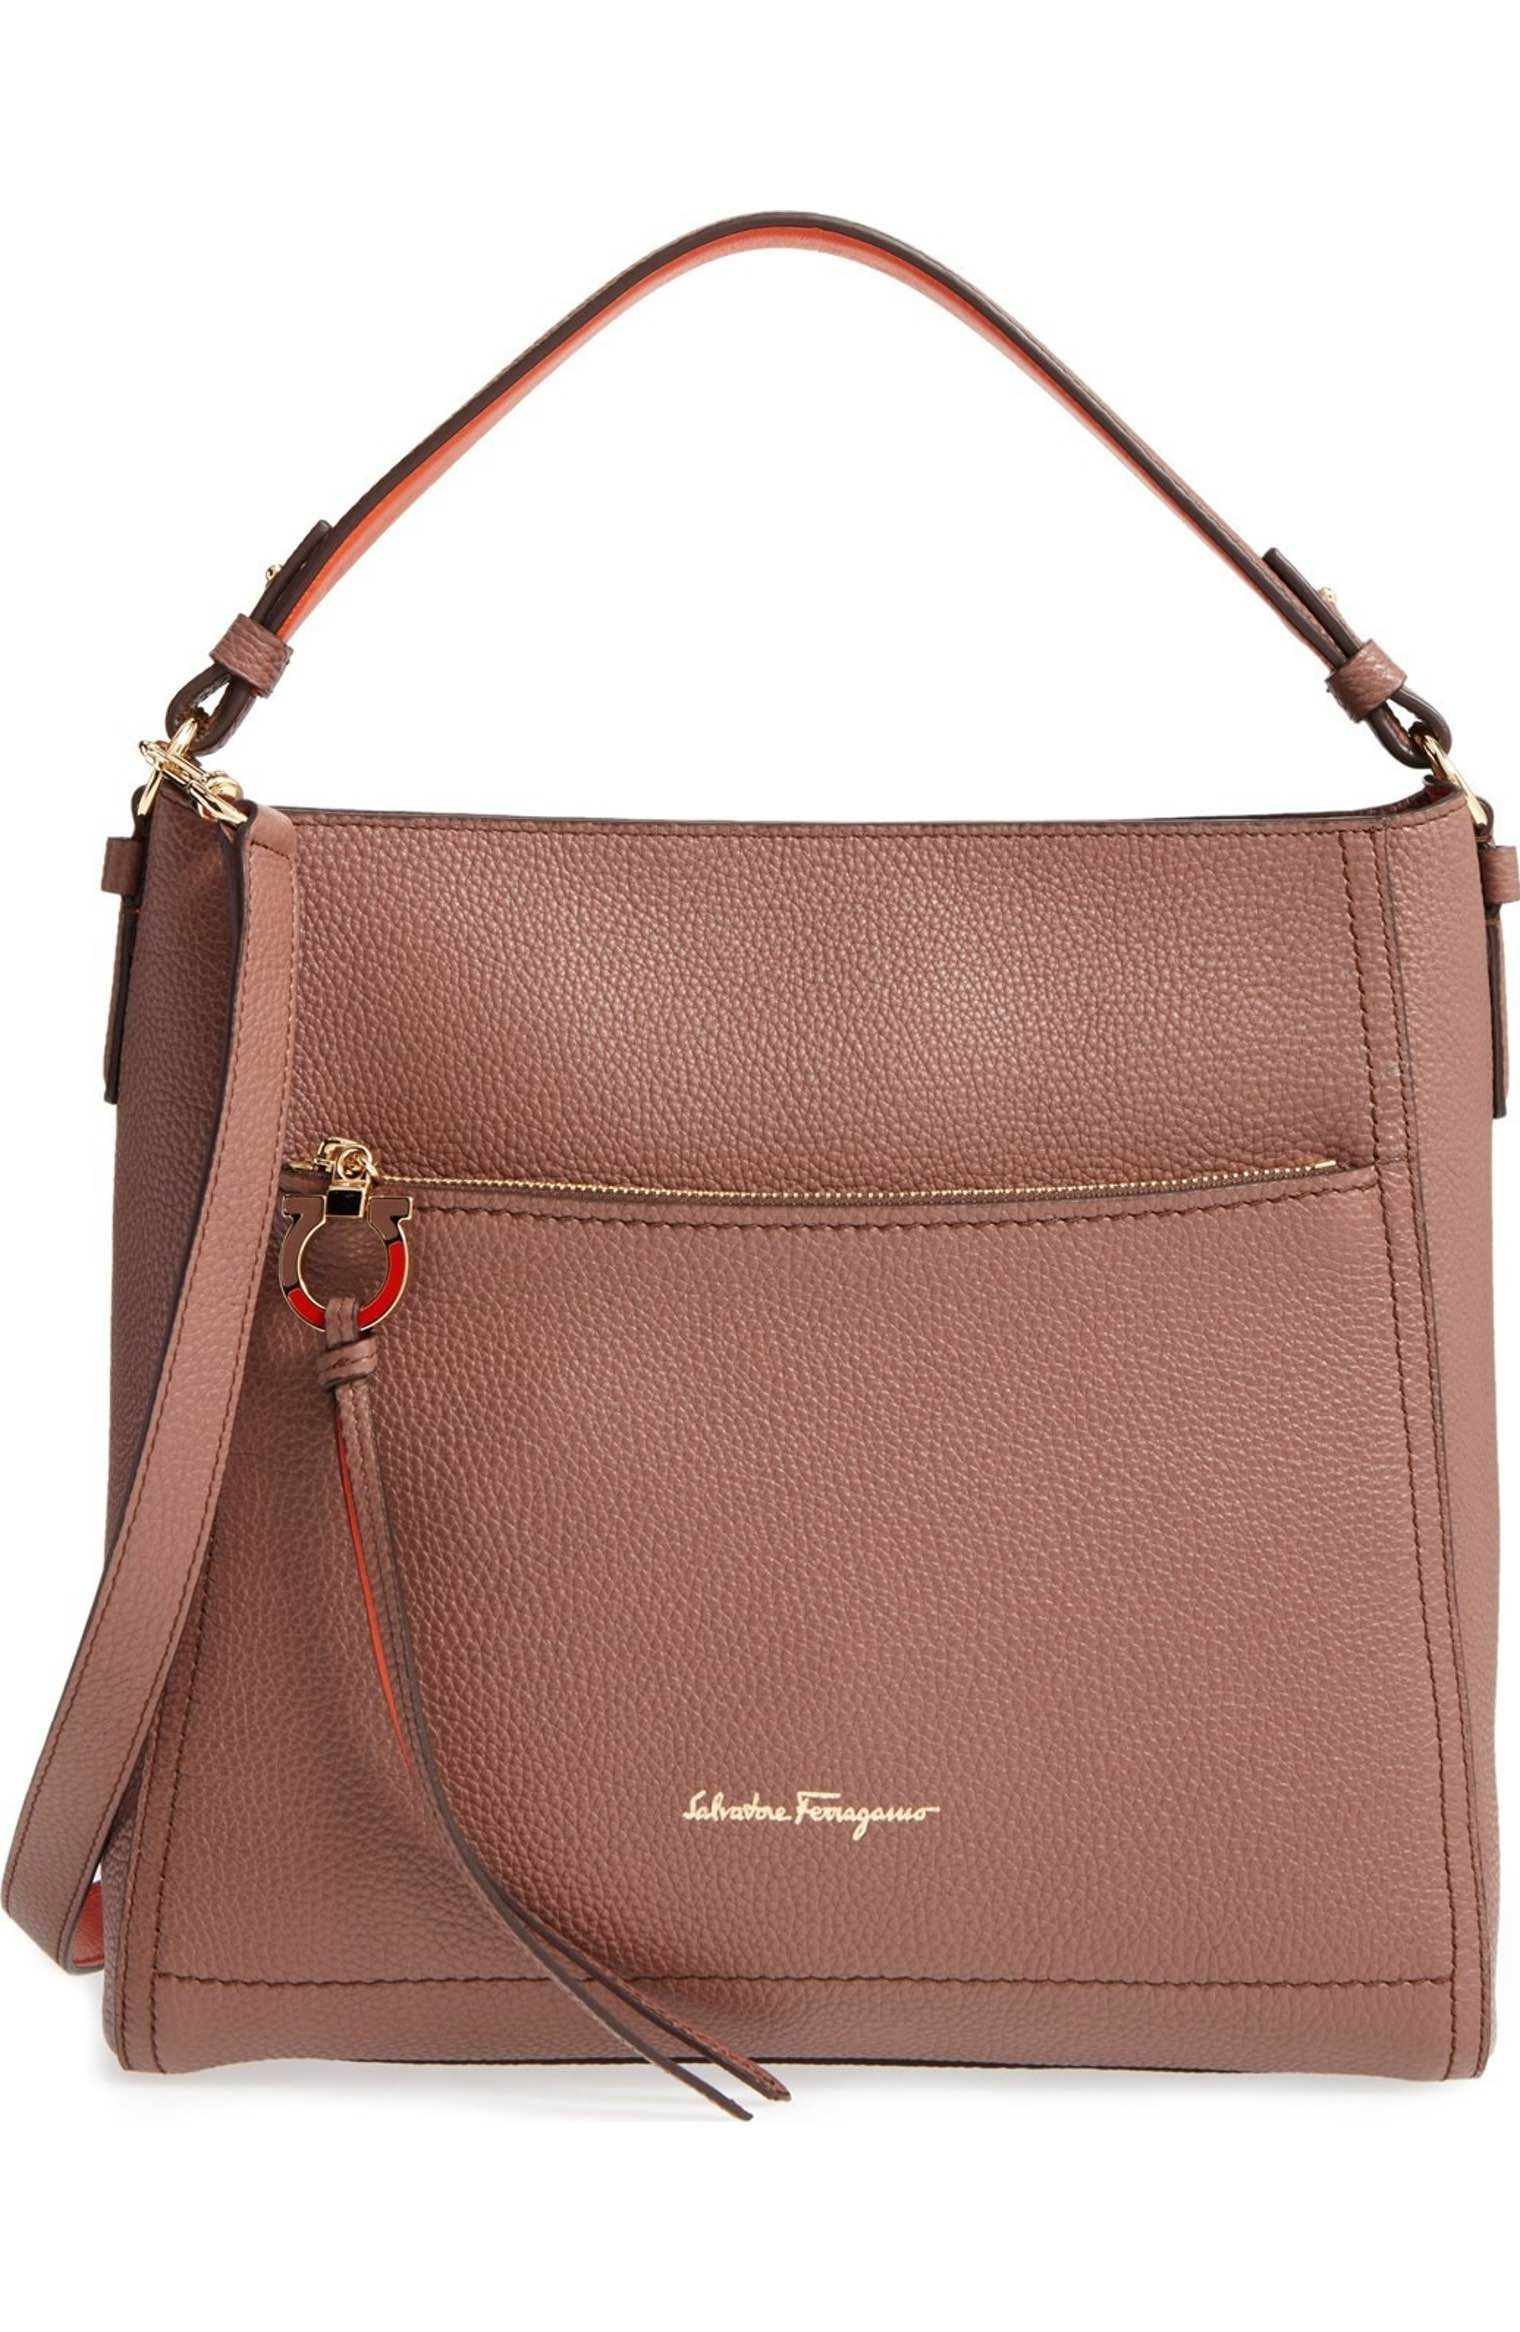 857515b12d Designer Handbags for Women. Main Image - Salvatore Ferragamo Large Ally  Leather Hobo